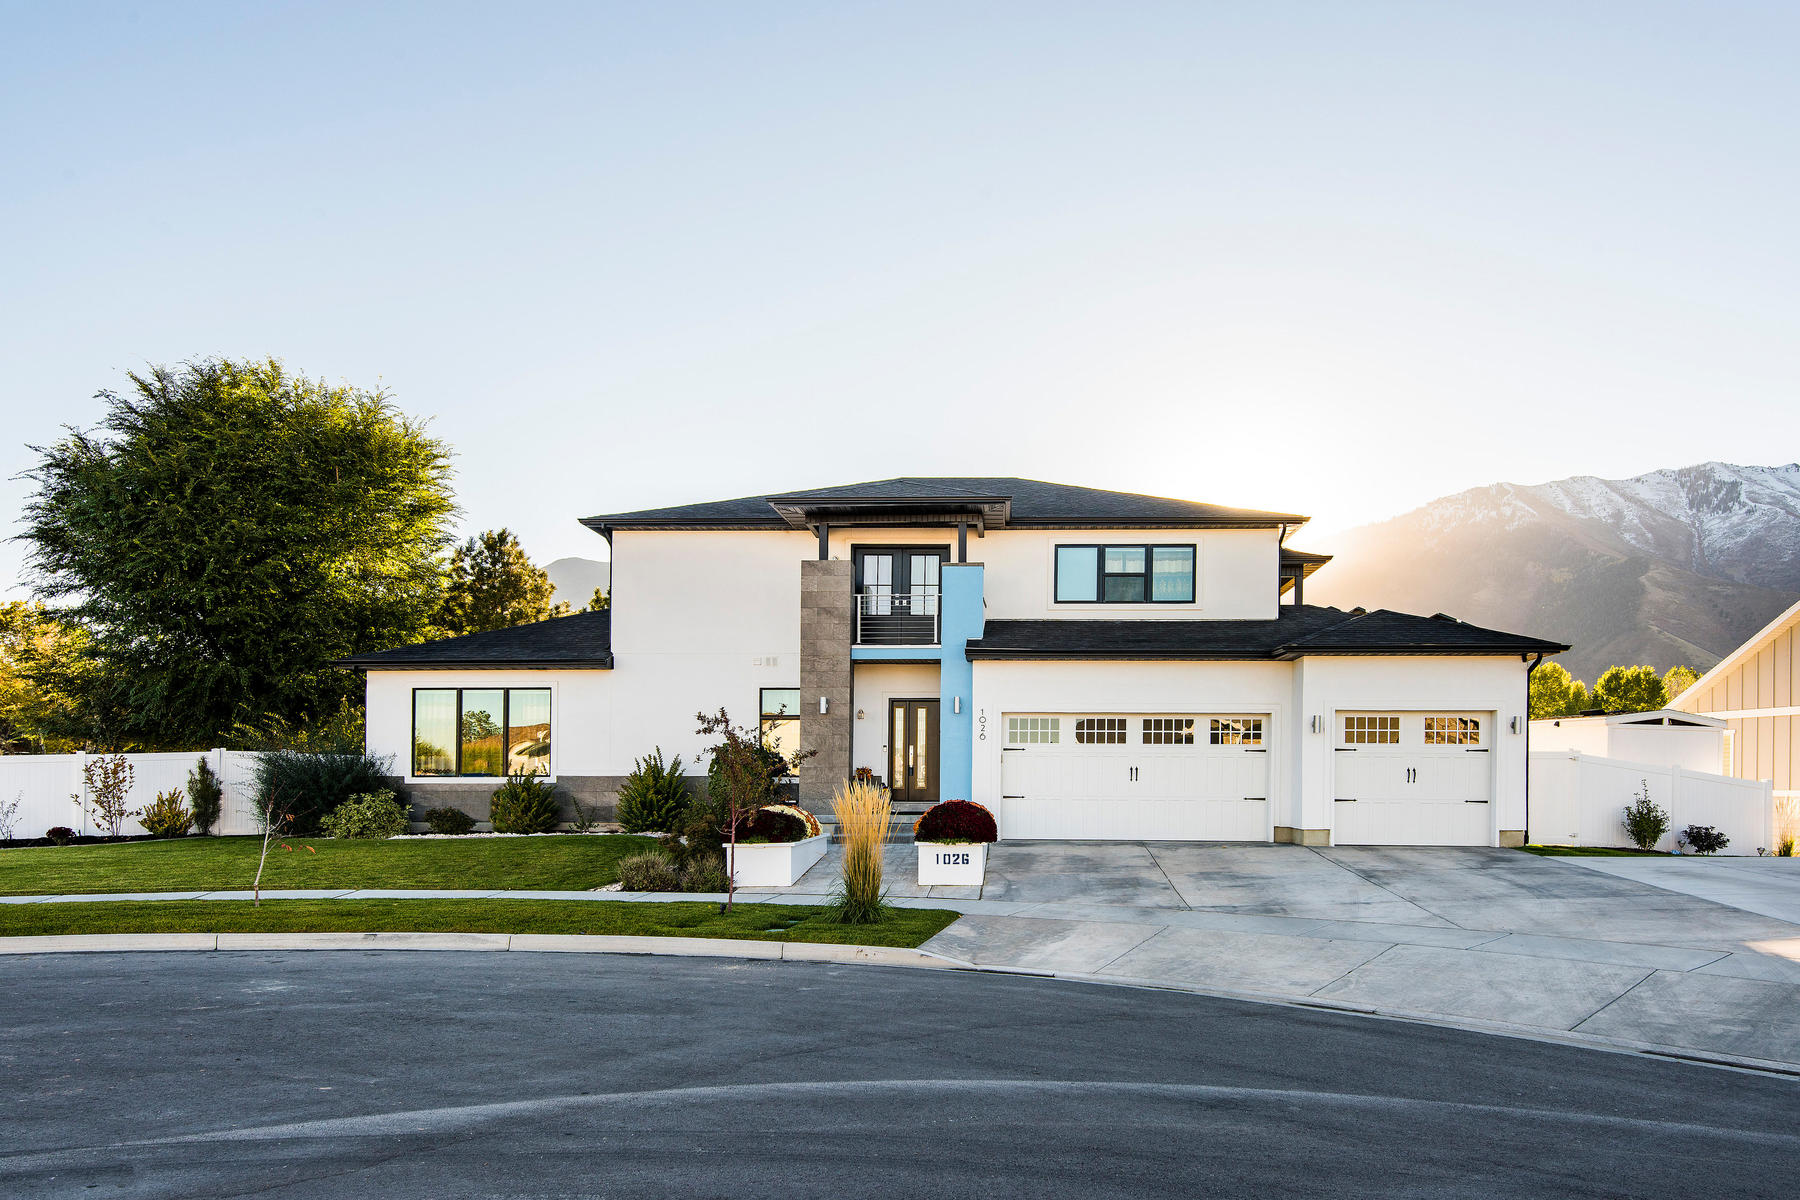 Single Family Homes for Sale at Beautiful New Home in Mapleton 1026 North 120 West Mapleton, Utah 84664 United States